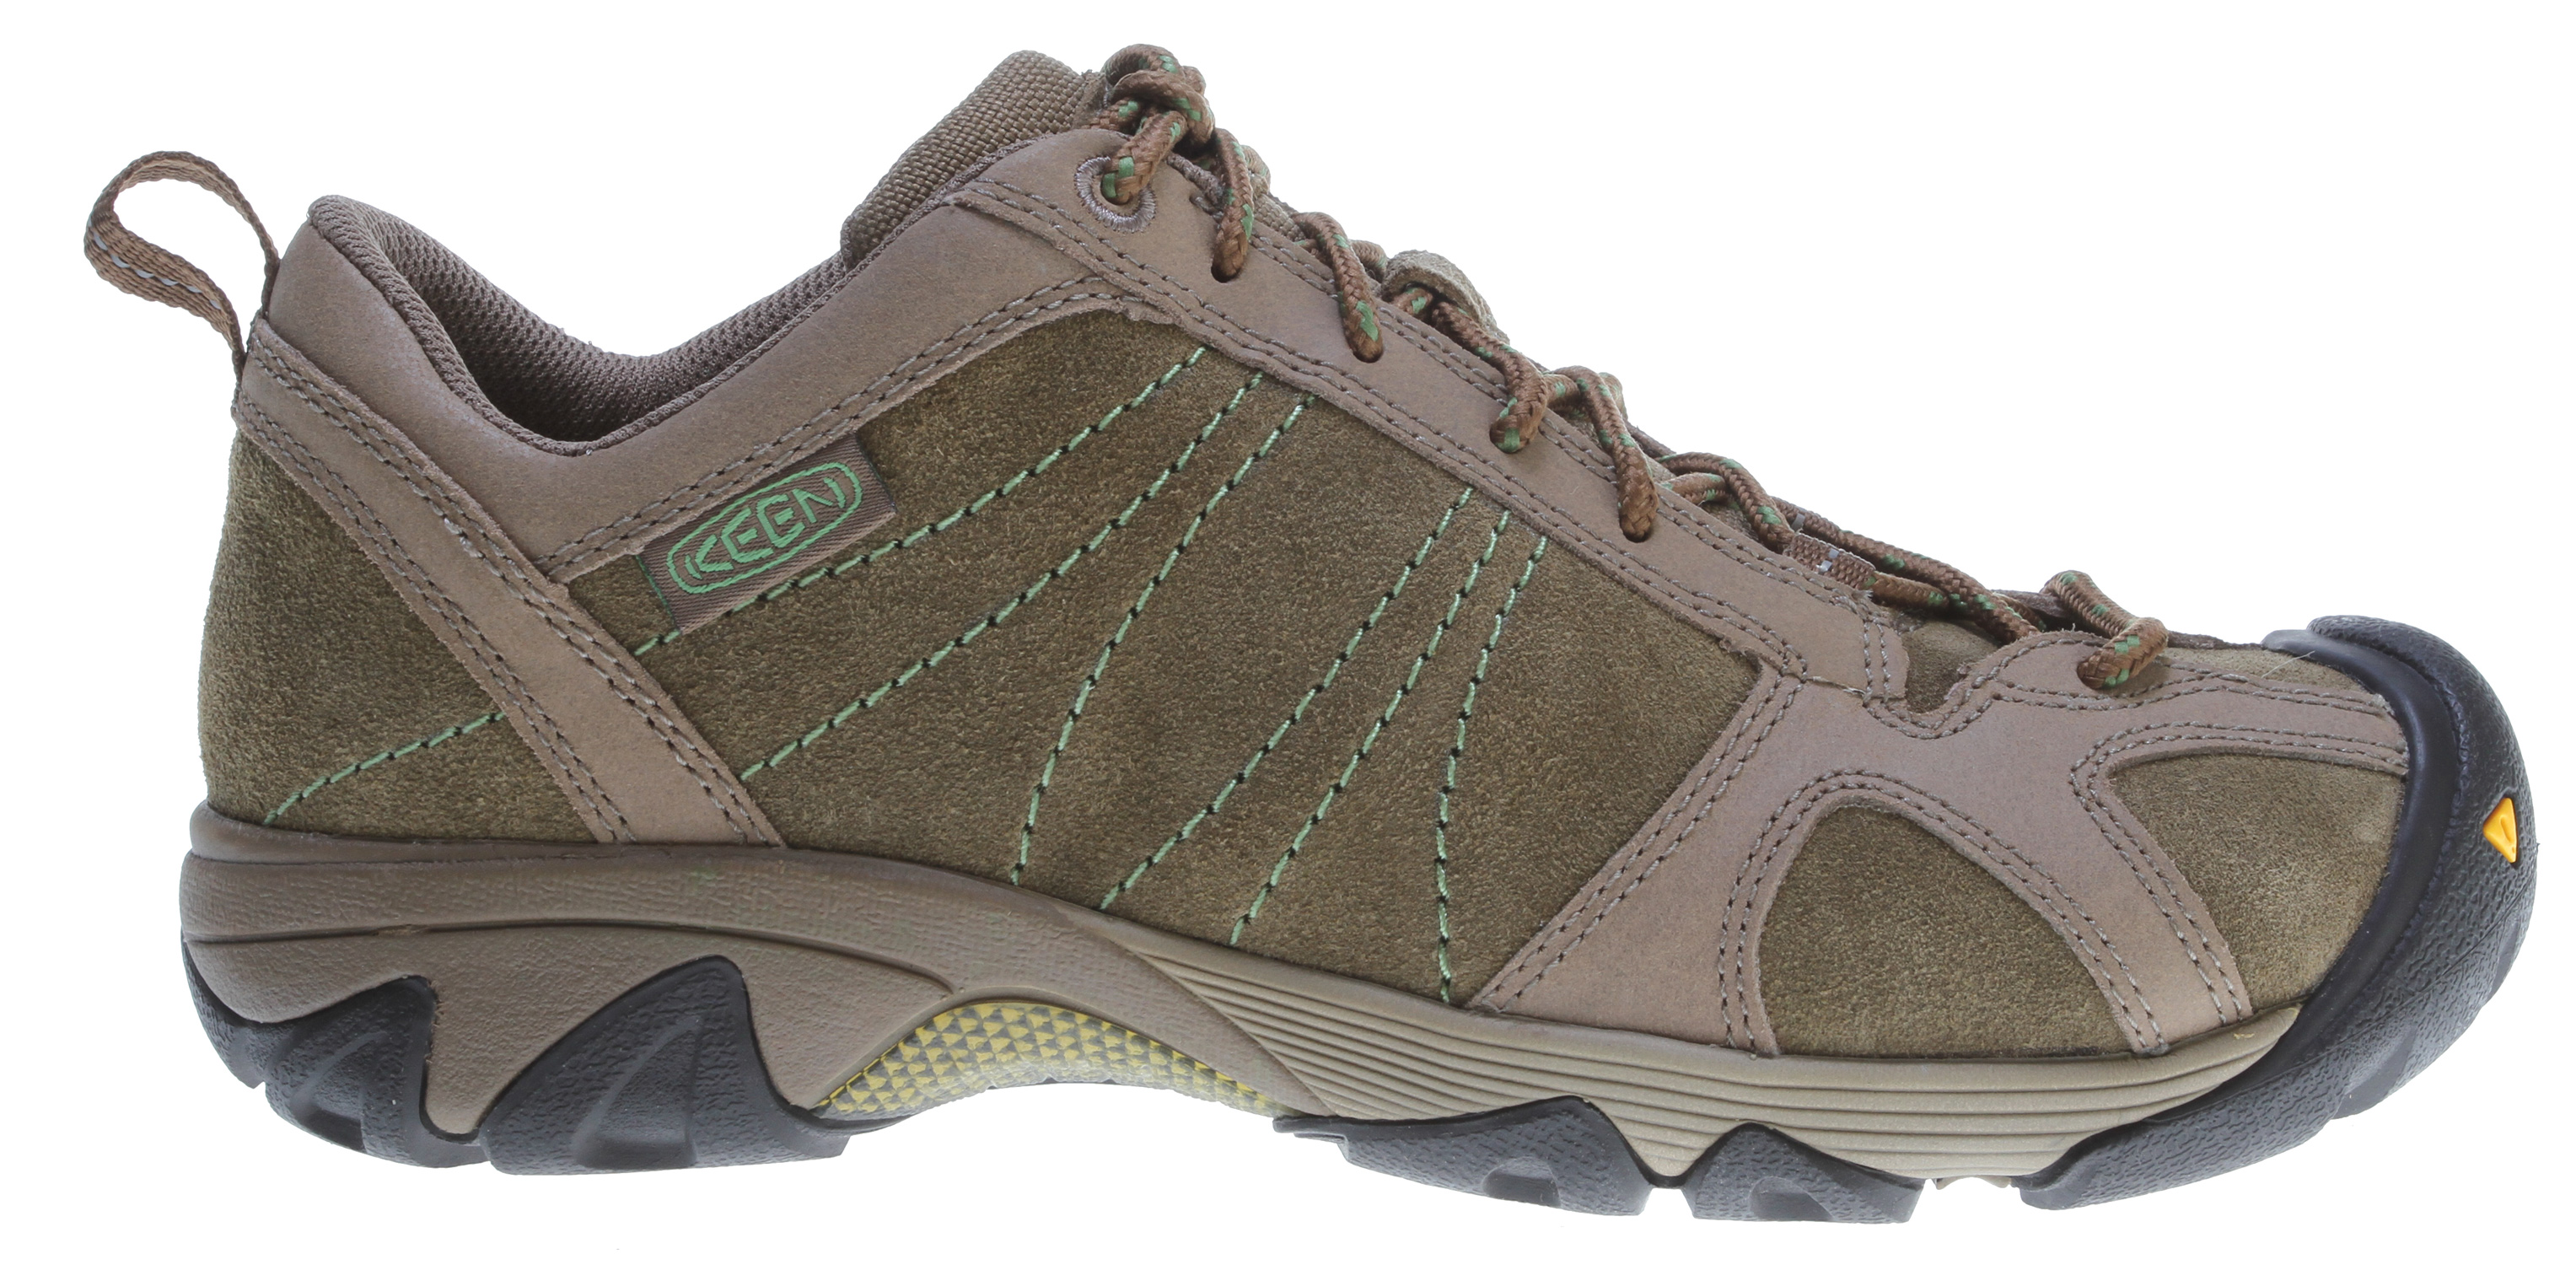 Camp and Hike It's not just about where you're going, but how you get there. With the Ambler, featuring a sticky Active-traction rubber sole and moisture-wicking textile lining, you'll get there in ease whether it's steep single track trails, a pile of boulders or dodging cacti.Key Features of the Keen Ambler Hiking Shoes Chocolate Chip/Jade Green: Lining: Moisture wicking textile lining Upper: Waxed suede upper with reinforced stitching Rubber: Non-marking rubber outsole Activities: Hiking Type: Shoes, Lace Up Weather: Wet - water resistant KEEN.Zorb Strobel Moisture wicking textile lining Non-marking rubber outsole Removable metatomical dual density EVA footbed S3 Heel support structure Torsion stability ESS shank TPU stability shank Waxed suede upper with reinforced stitching S3: Shock, suspension, stability – otherwise known as S3 – is engineered to support the foot on impact, dissipate shock and reduce your odds of twisting an ankle. KEEN.CUSH: What if the inside of your shoe could mold to your feet? KEEN.CUSH is a blend of recycled PU, cork and memory foam that contours to feet and adjusts to give you the cushioning you need throughout your day. - $69.95